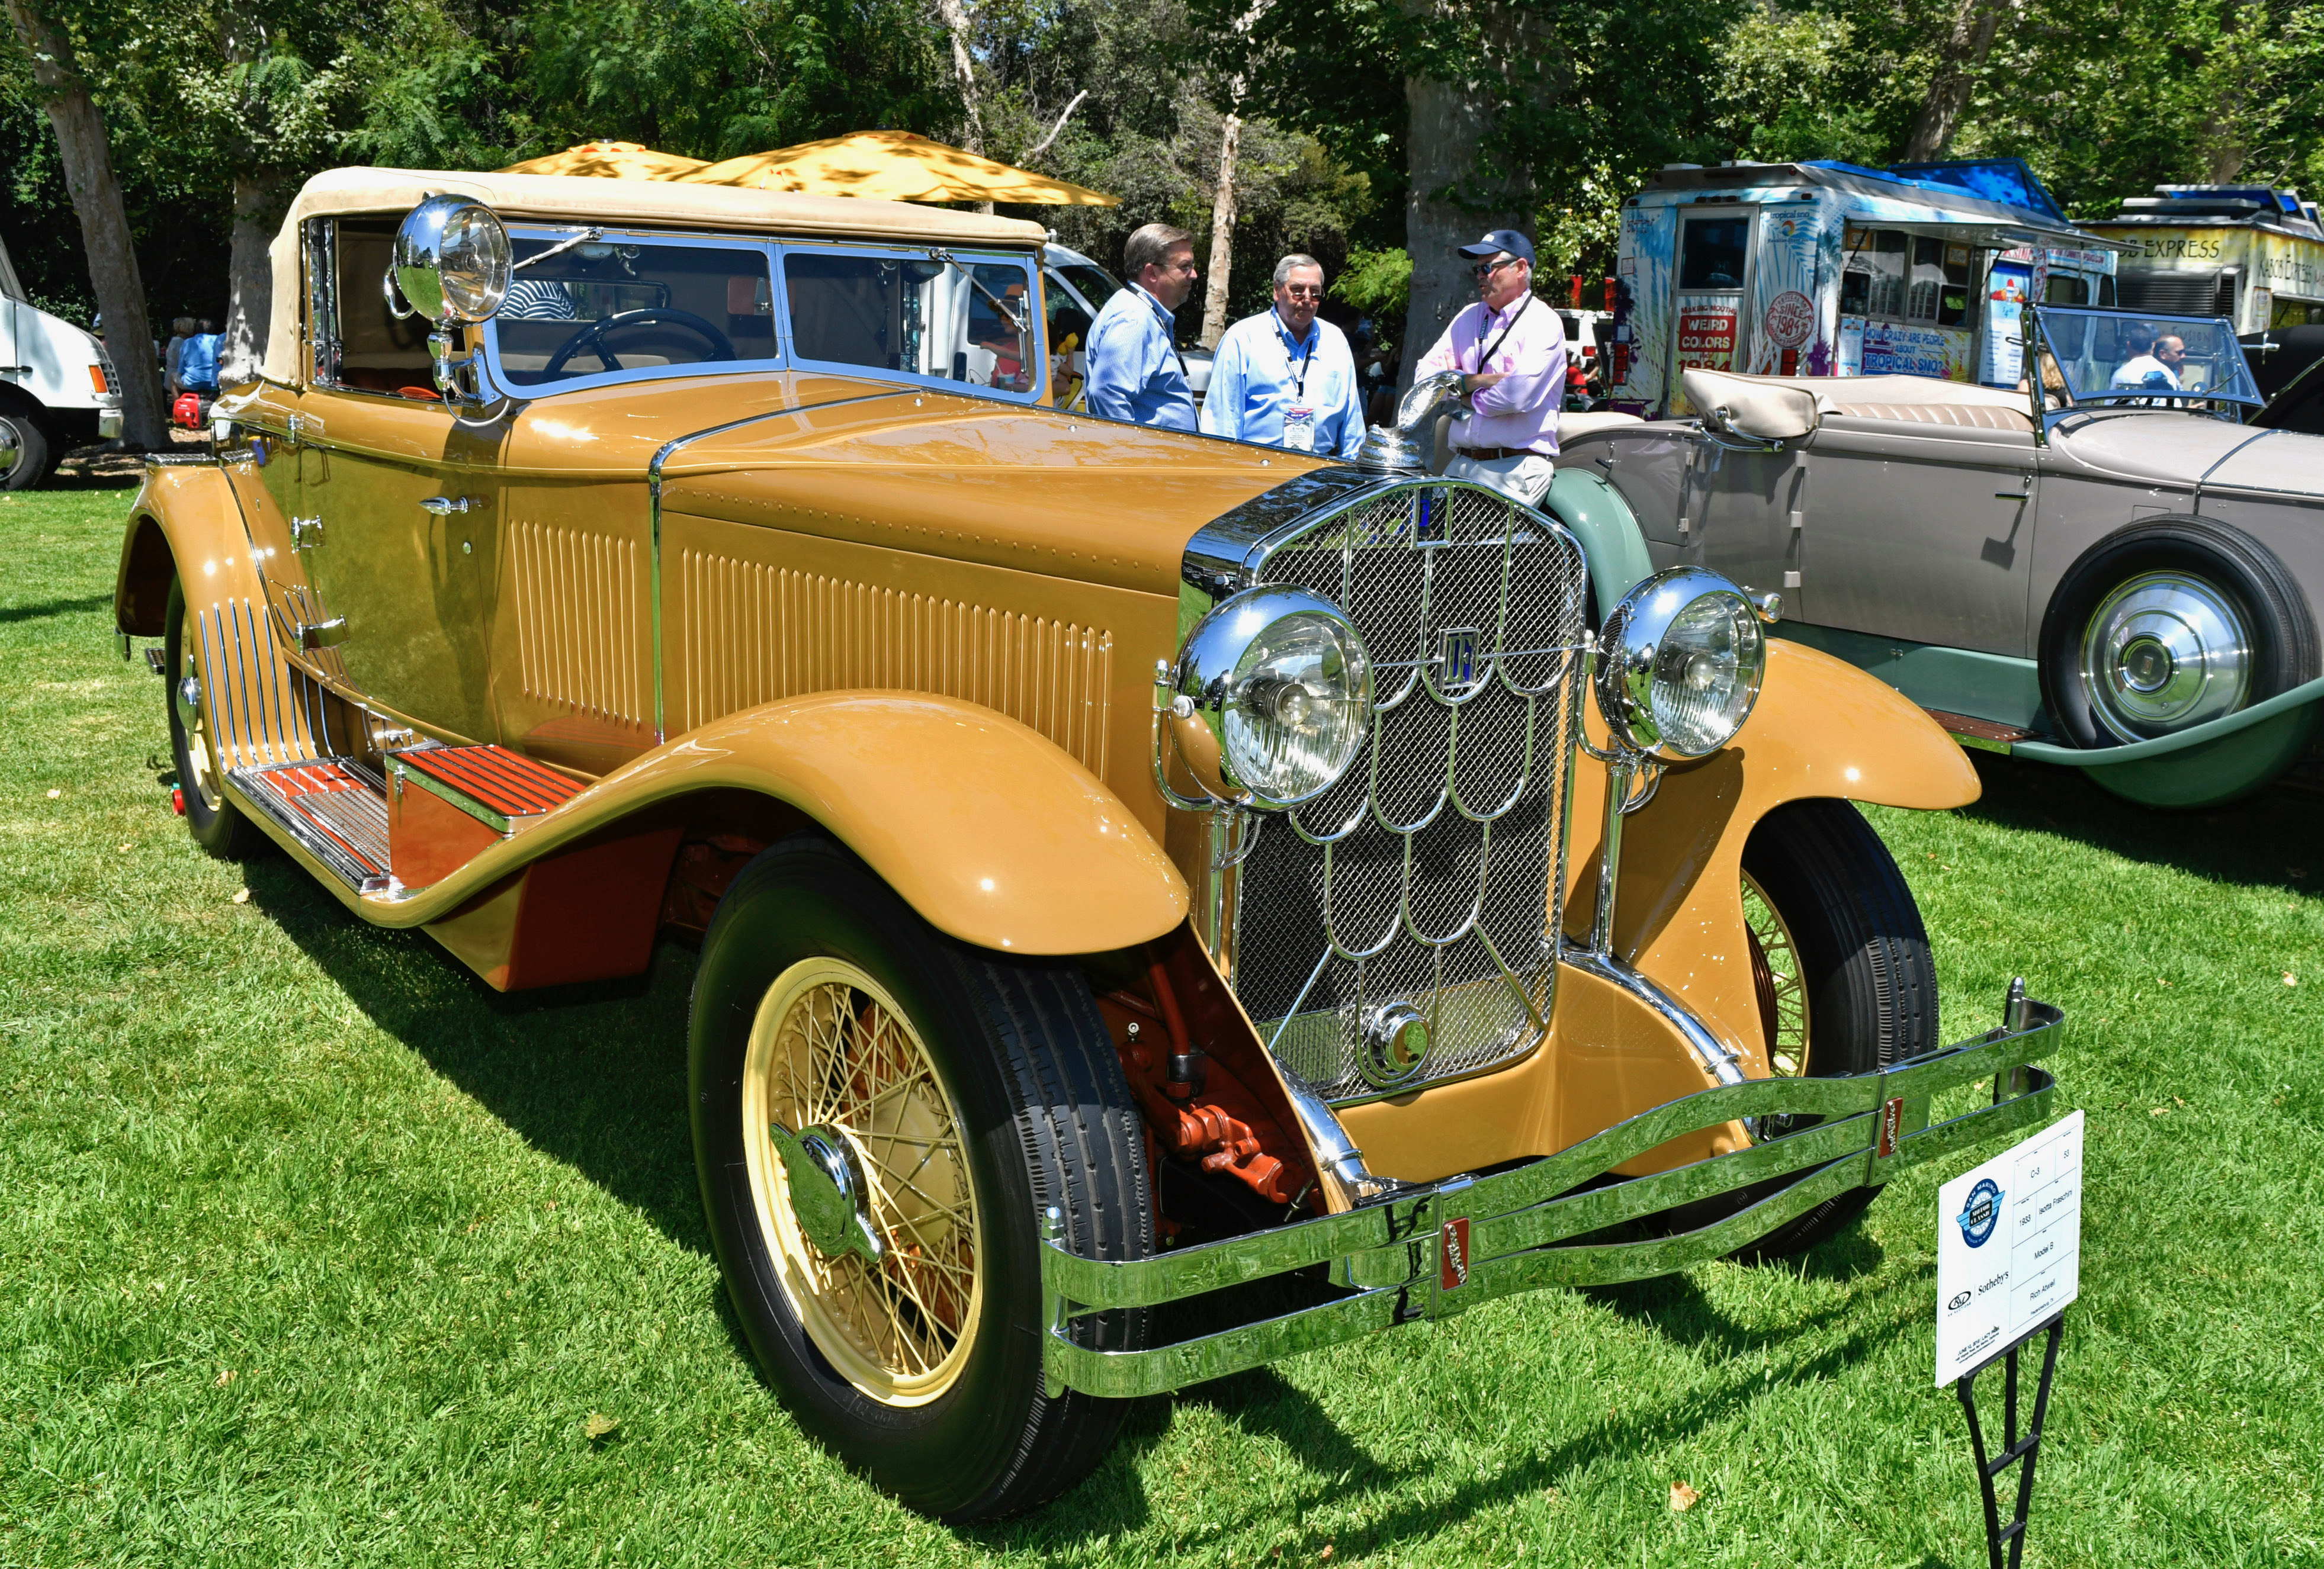 33 isotta fraschini model b first in class rich atwell 3323 howard